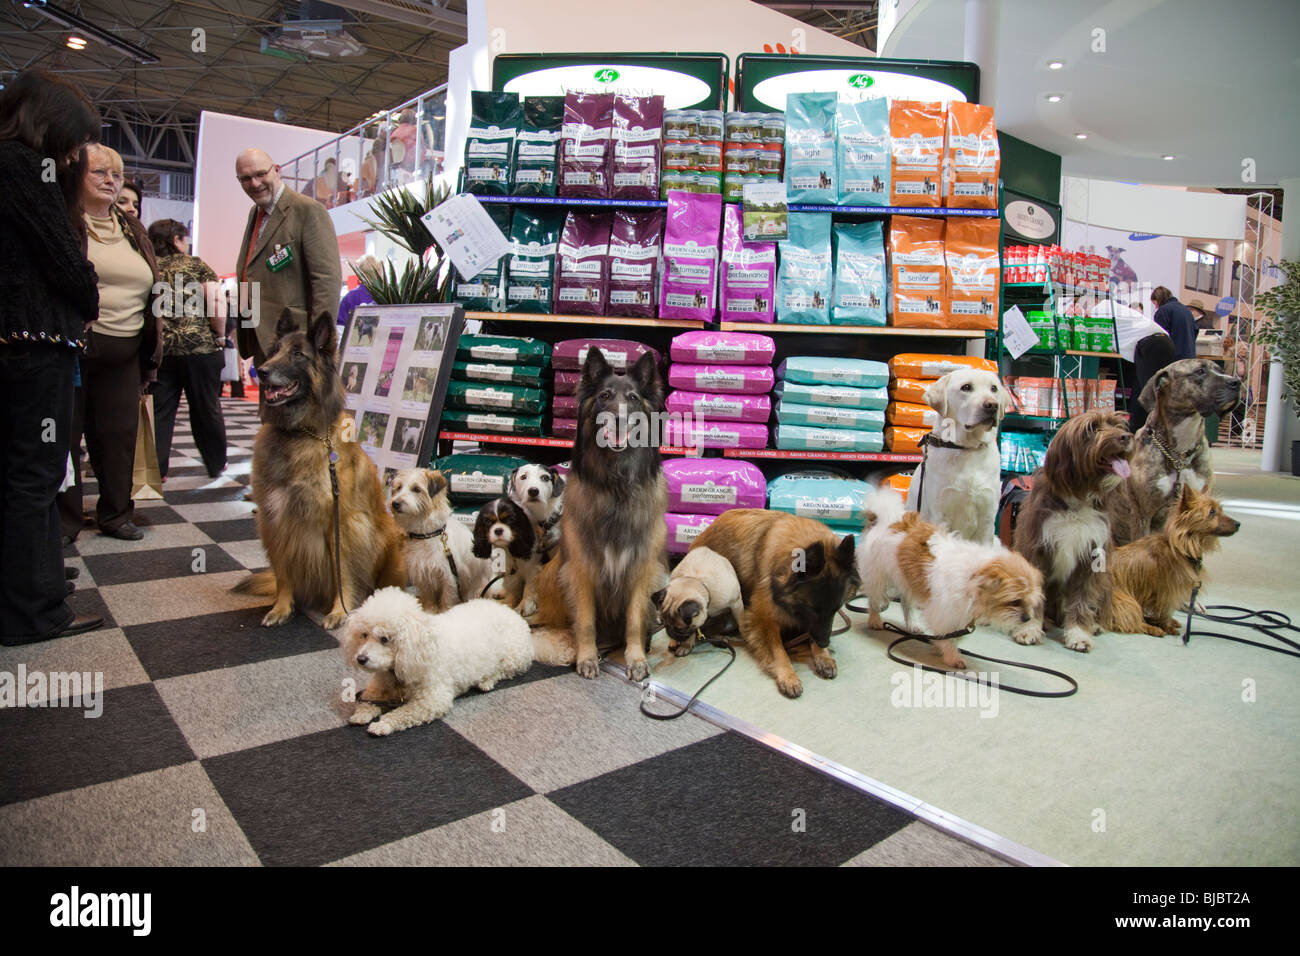 Crufts, Birmingham NEC, 2010. Dogs getting ready for the show, Pedigree pets for best in show - Stock Image